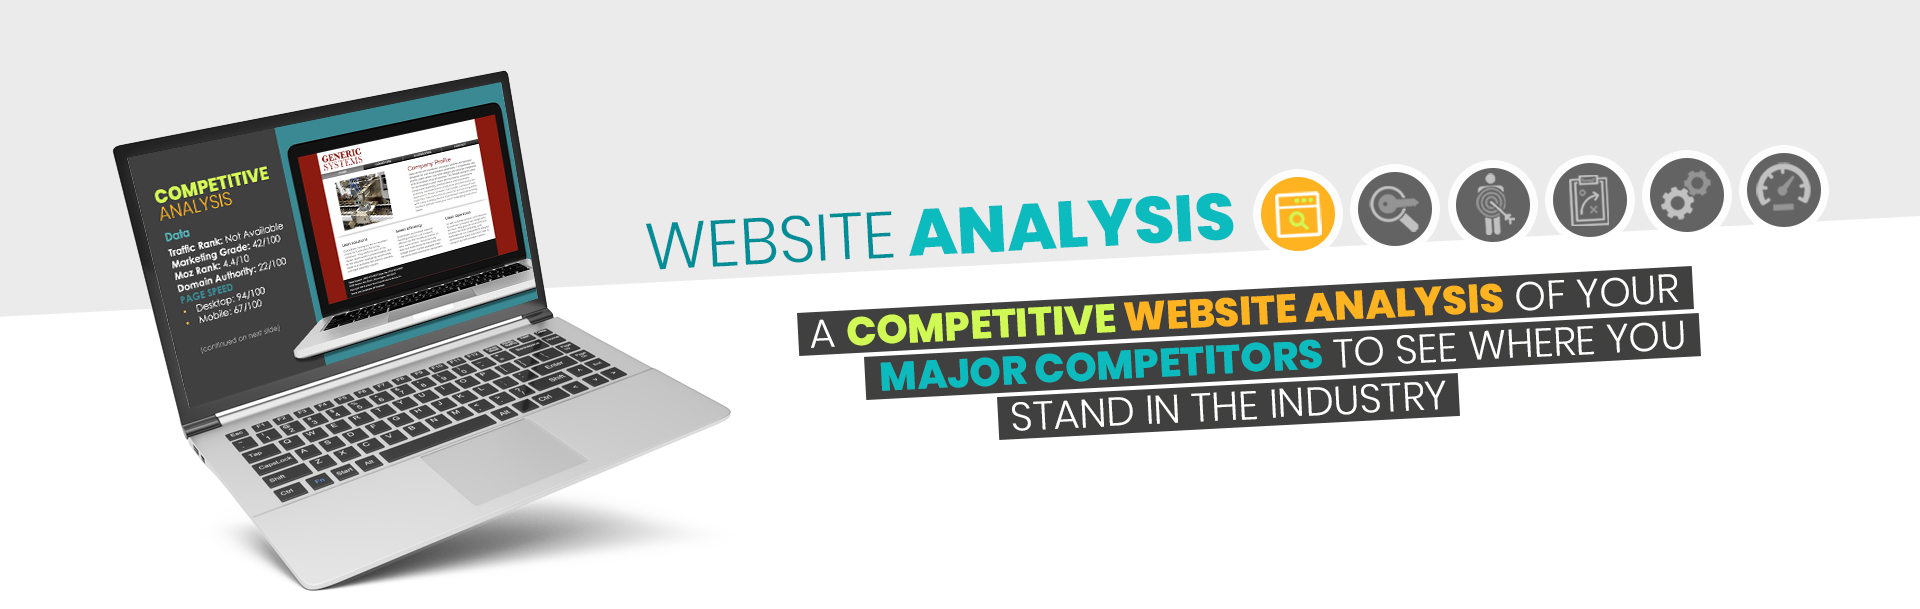 Website Analysis - Competitive Analysis